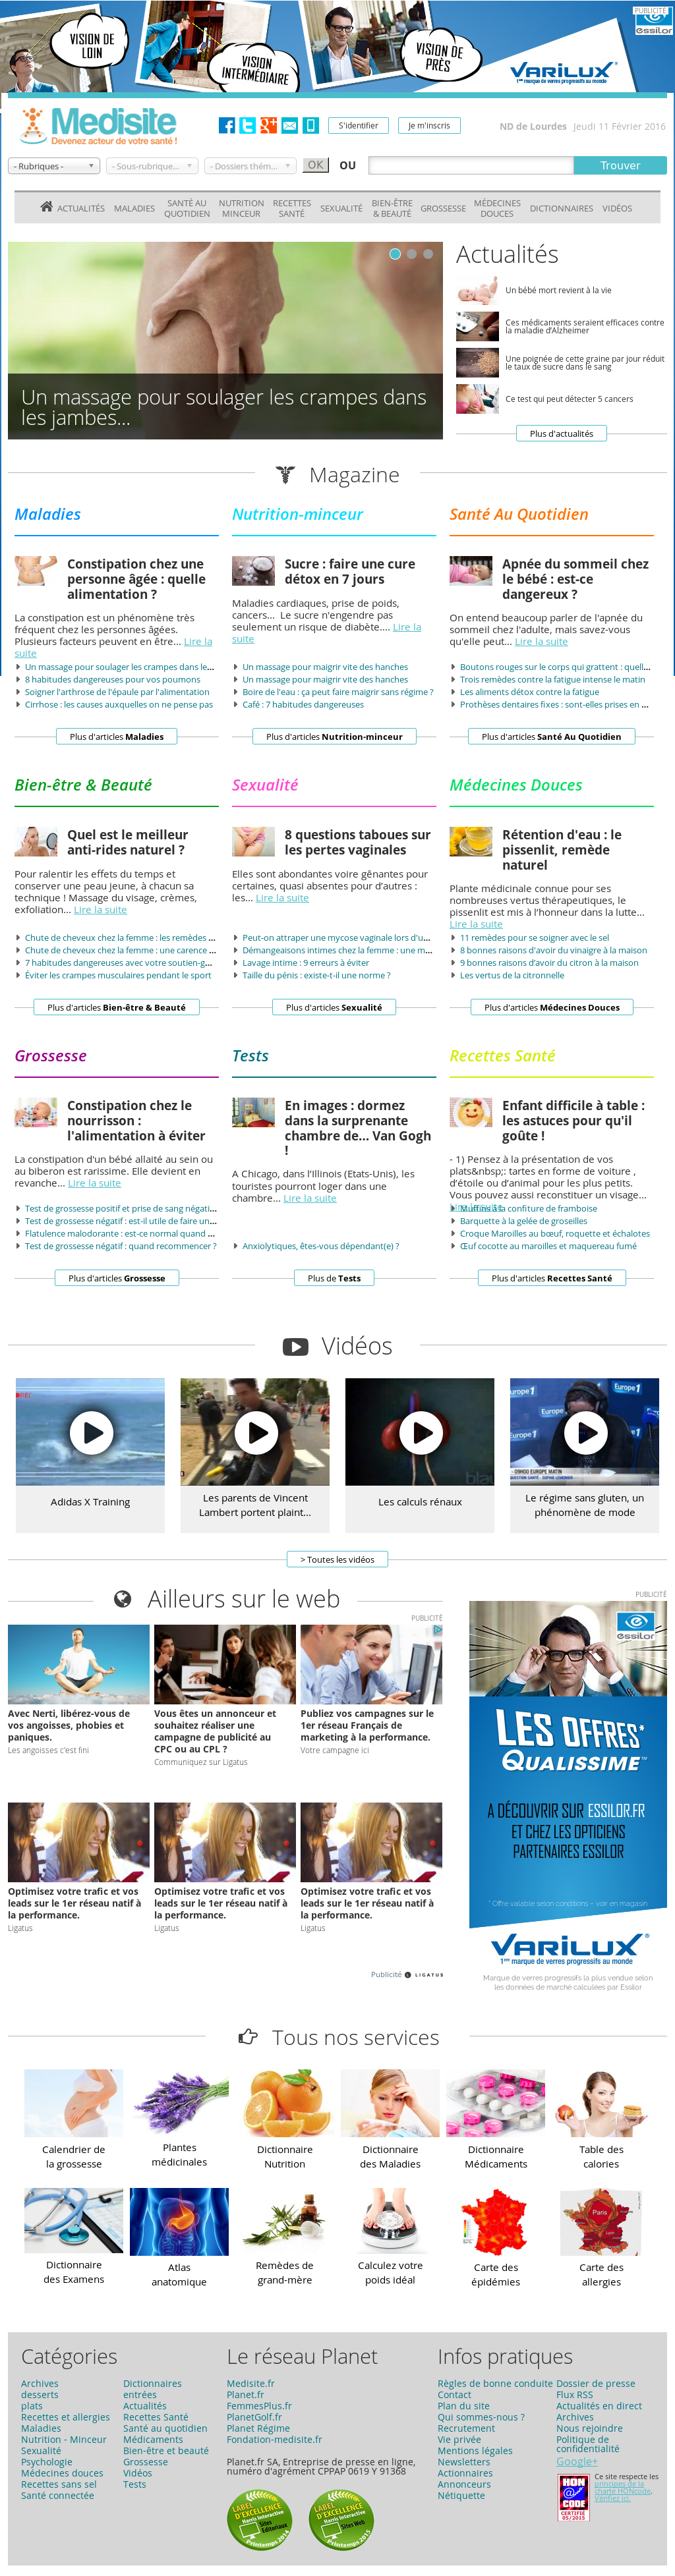 Medisite fr Competitors, Revenue and Employees - Owler Company Profile